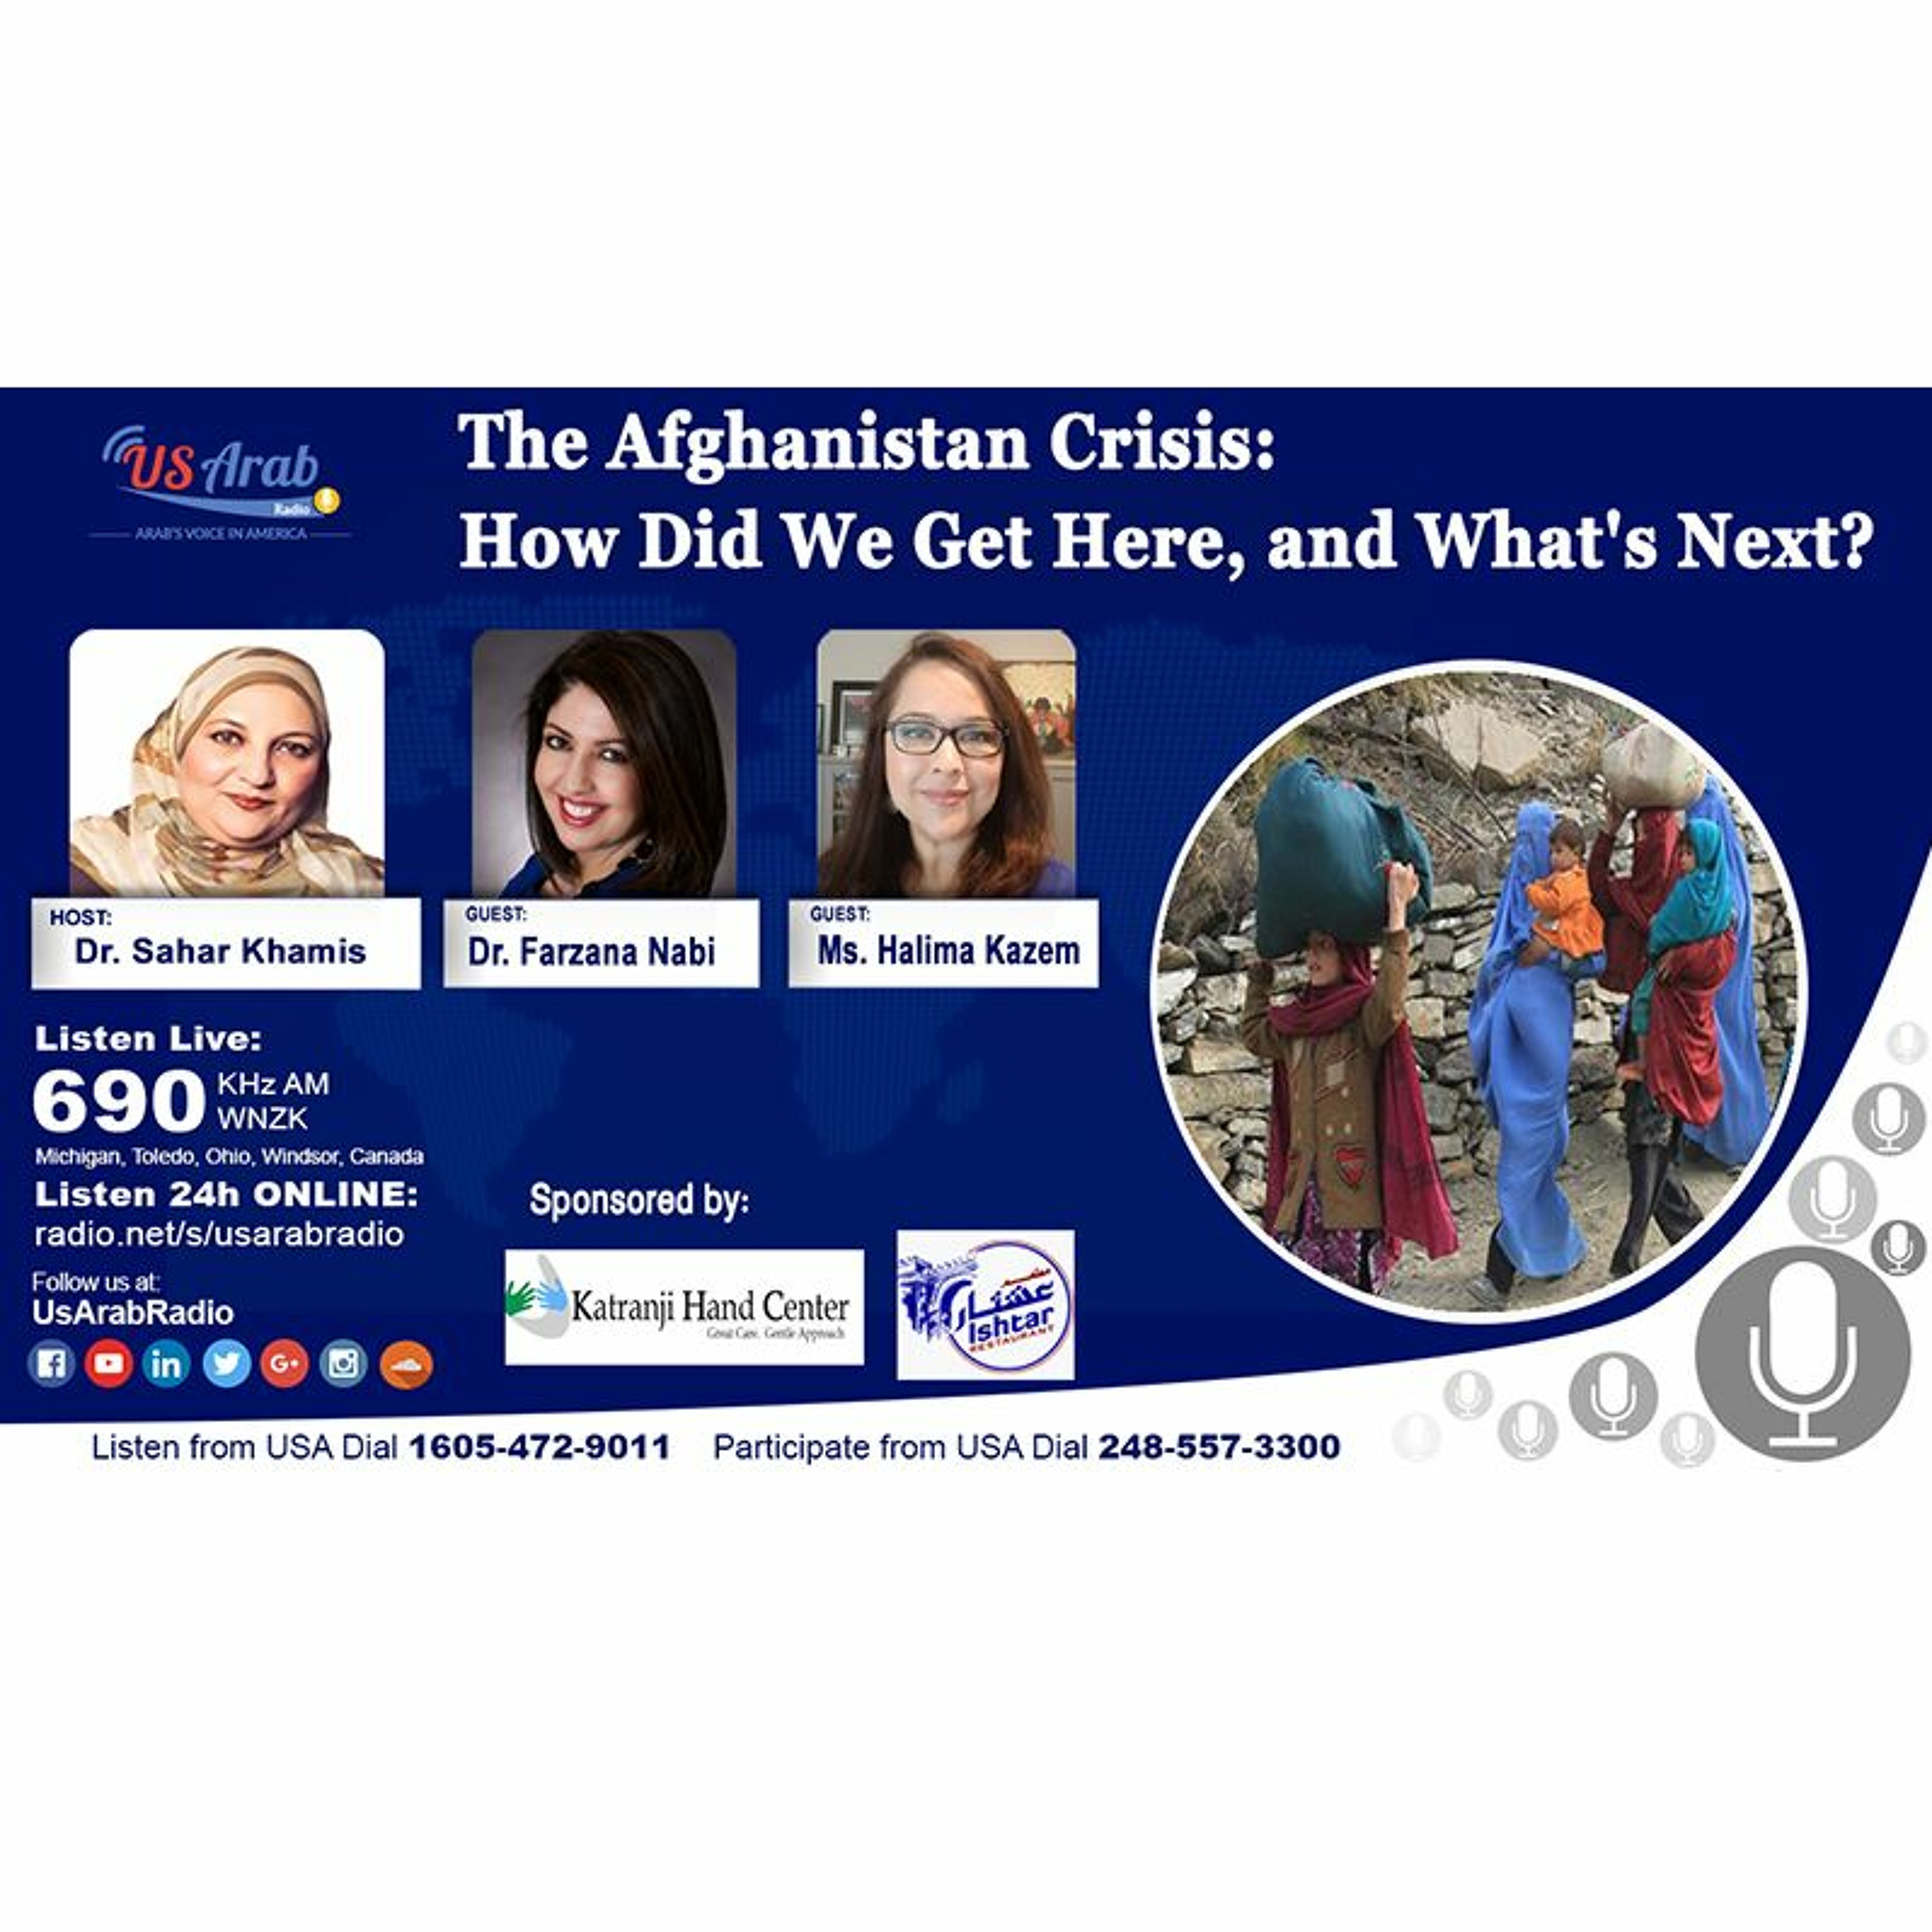 The Afghanistan Crisis: How Did We Get Here, and What's Next?